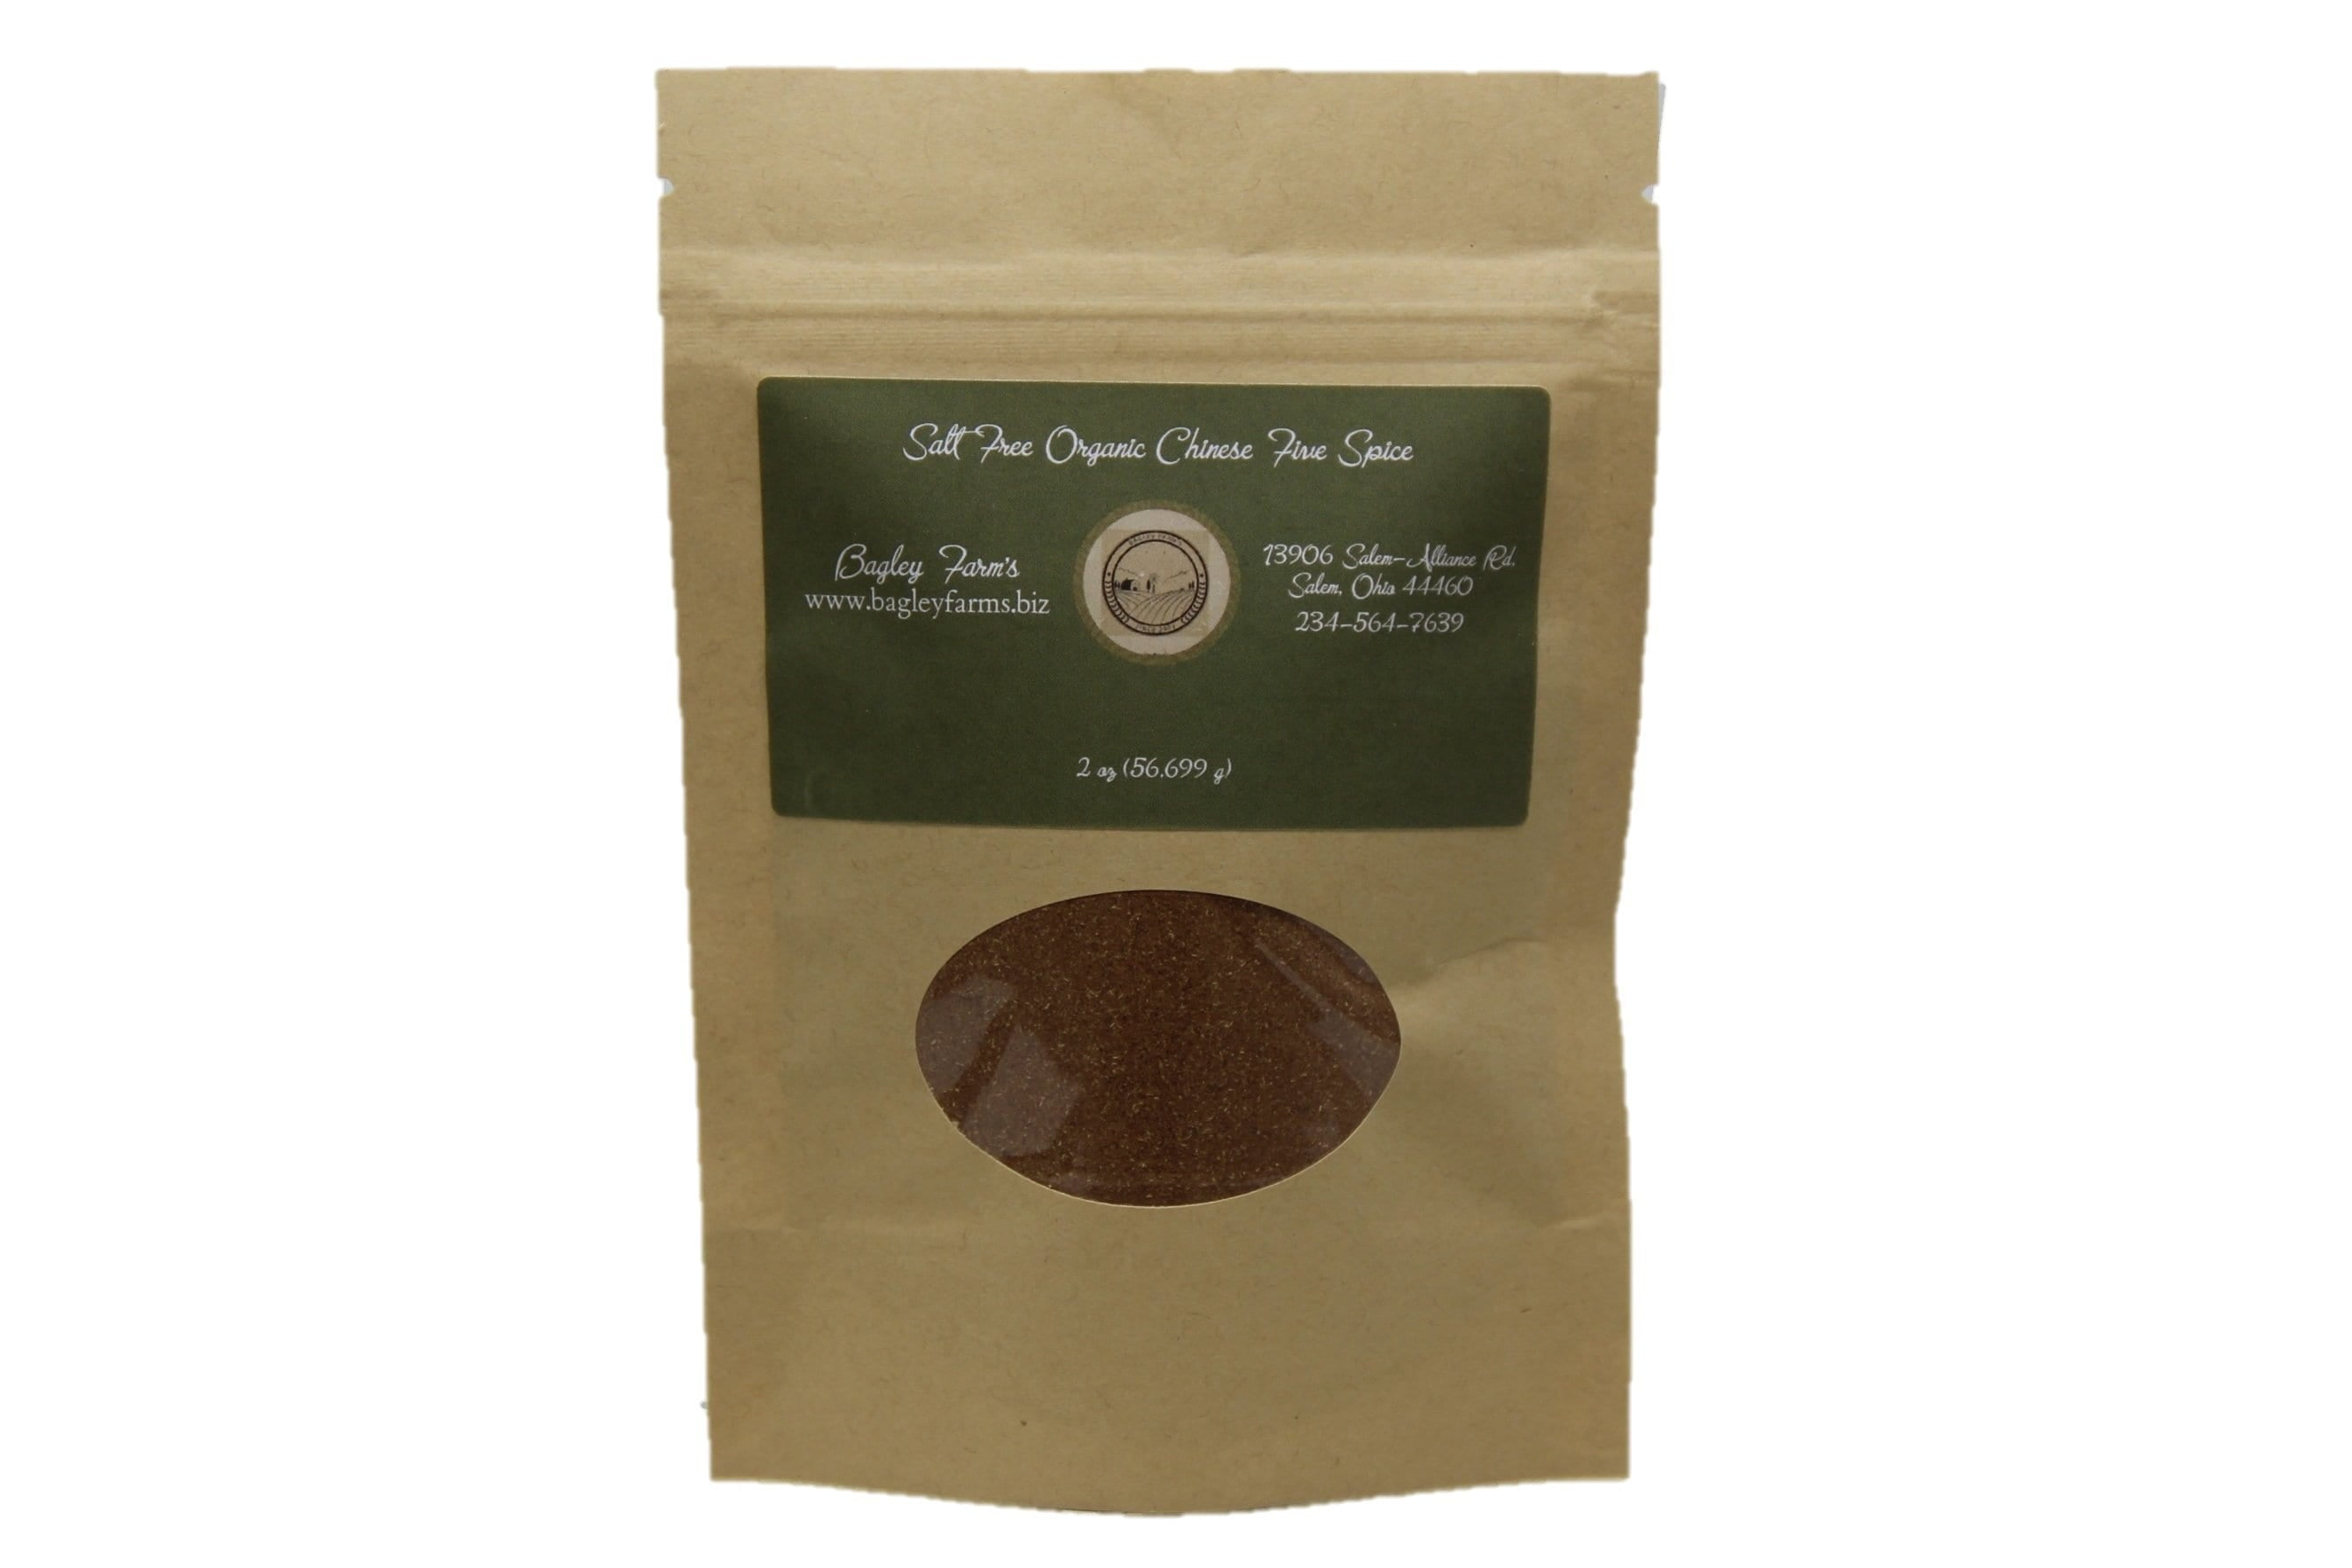 Organic Chinese Five Spice (Salt FREE) 2 oz